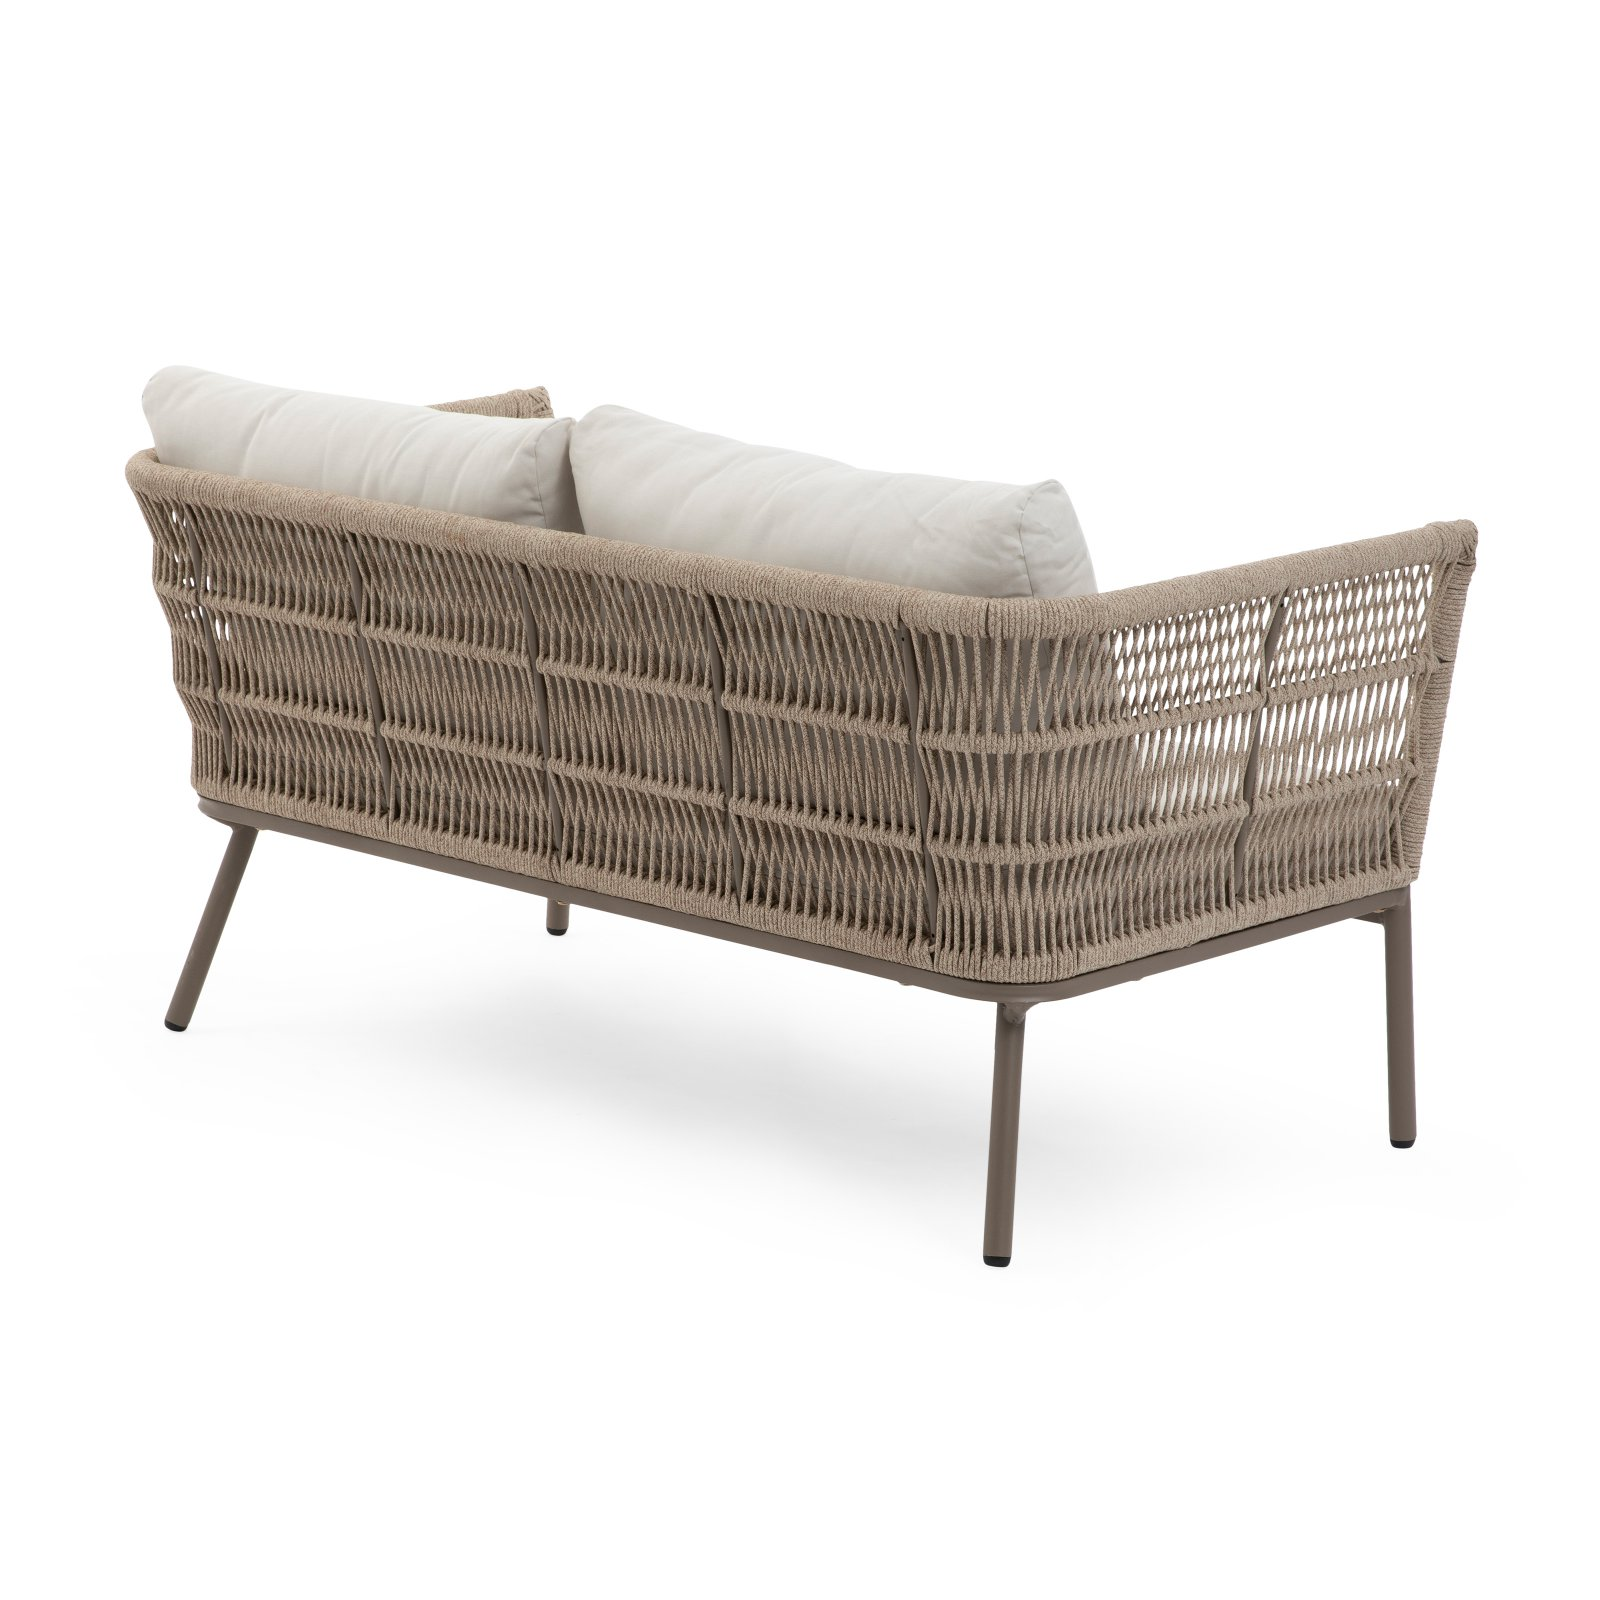 Wondrous Belham Living Wicklow Rope Weave Outdoor Sectional Sofa Set Bralicious Painted Fabric Chair Ideas Braliciousco